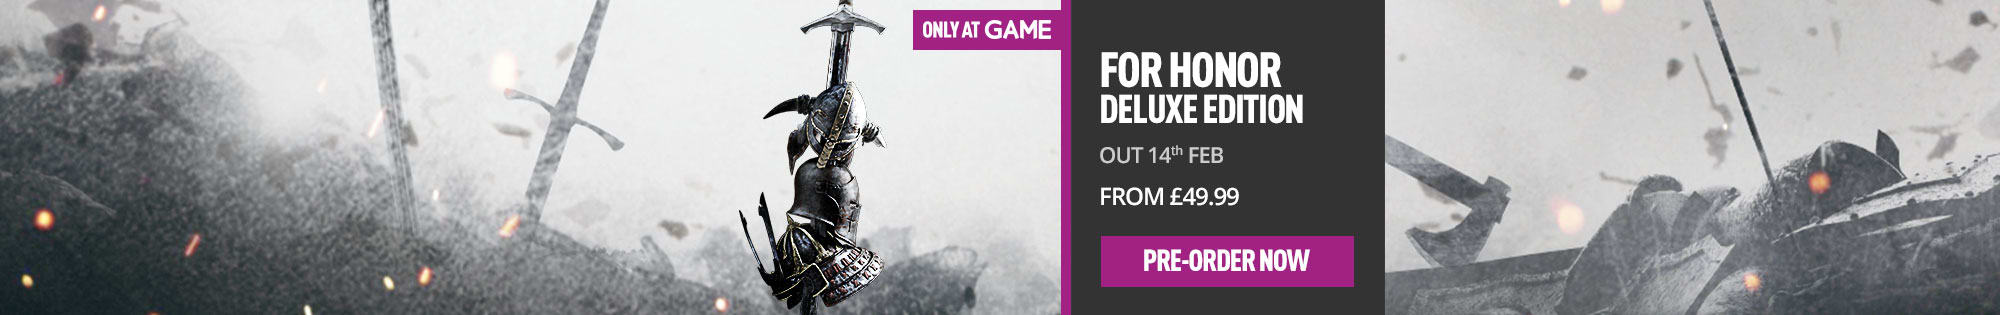 For Honor for Xbox One and PS4 - Pre-order Now at GAME.co.uk